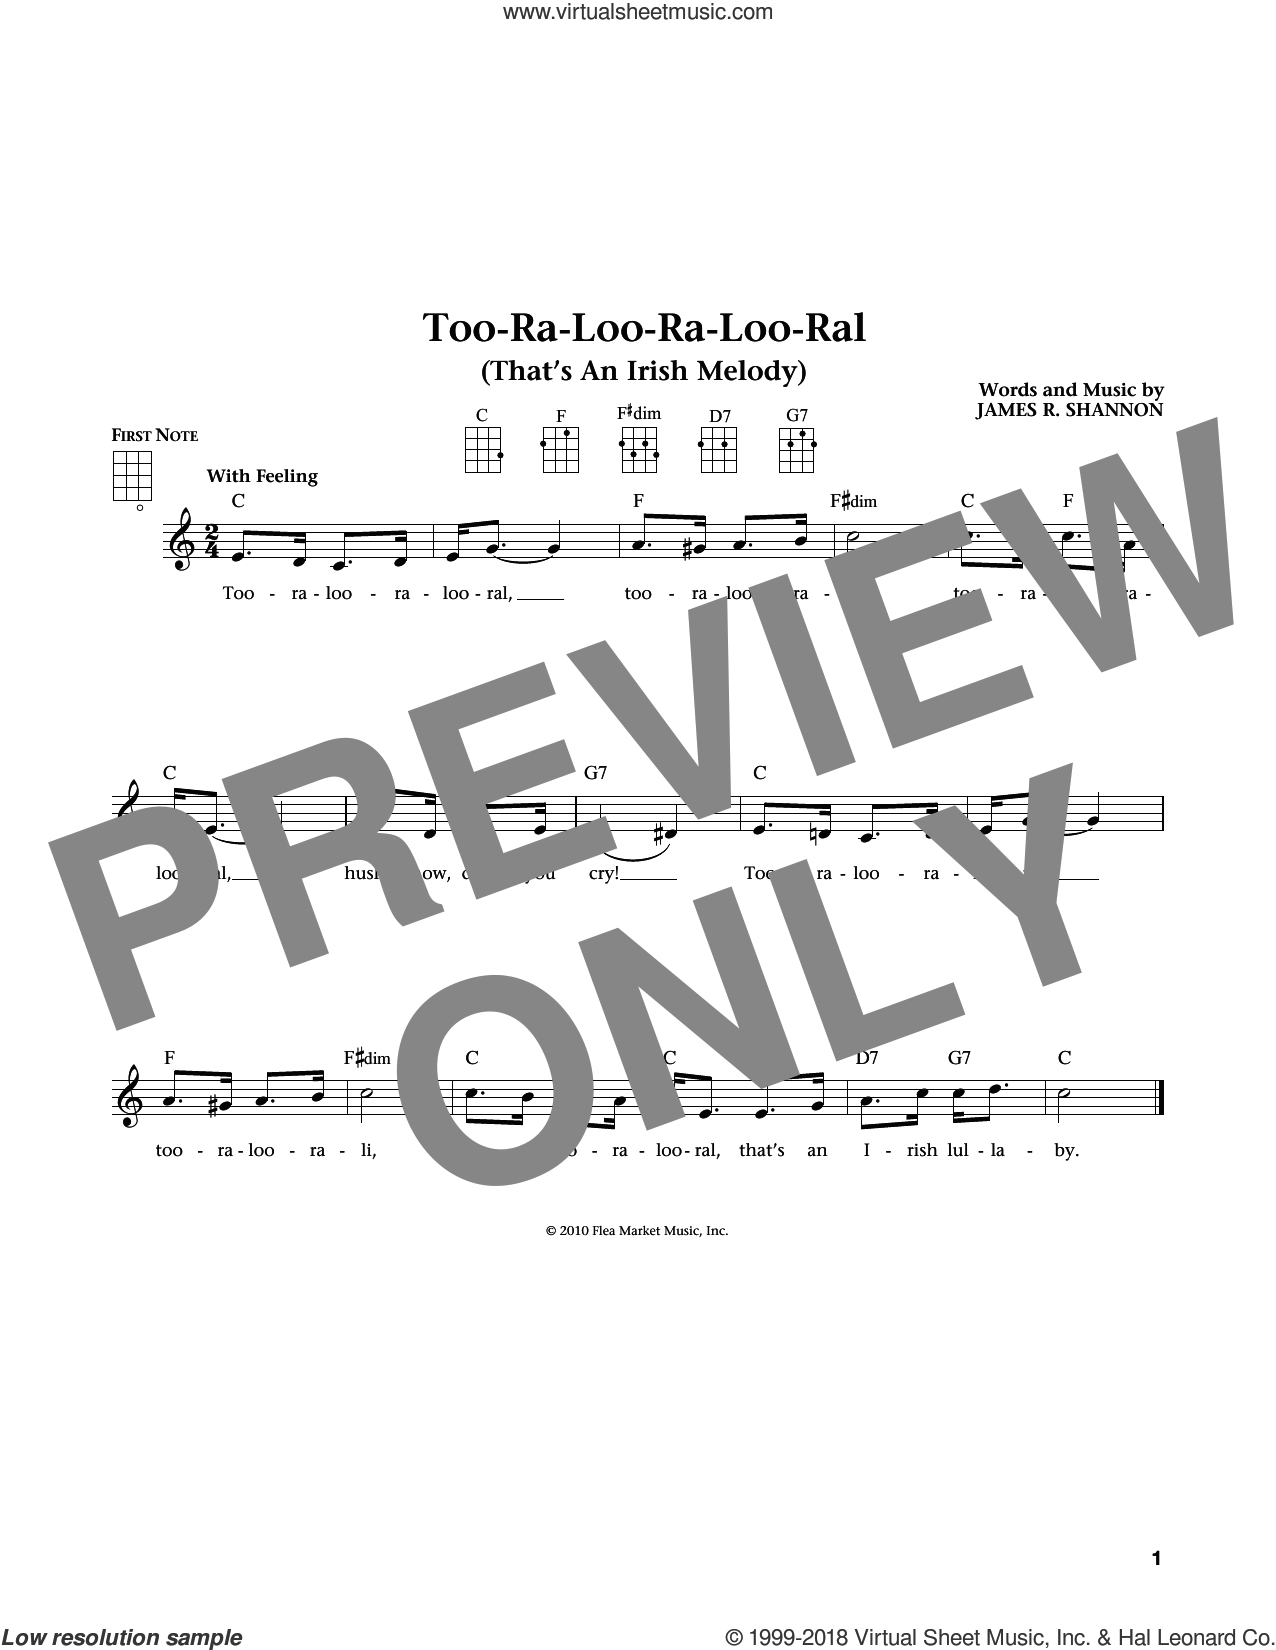 Too-Ra-Loo-Ra-Loo-Ral (That's An Irish Lullaby) (from The Daily Ukulele) (arr. Liz and Jim Beloff) sheet music for ukulele by James R. Shannon, Jim Beloff and Liz Beloff, intermediate skill level